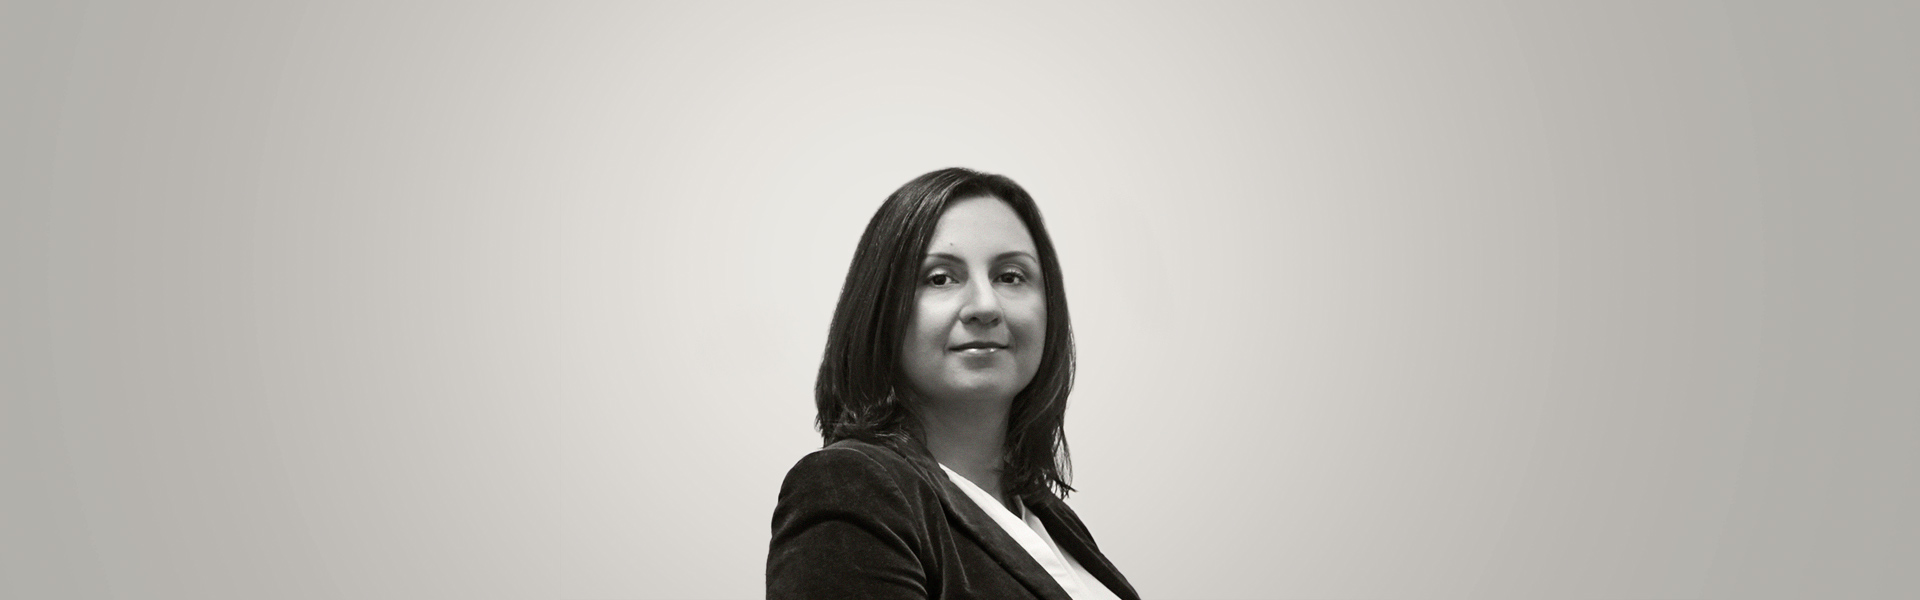 Catarina Azevedo | INOVA+ - Head of International Unit